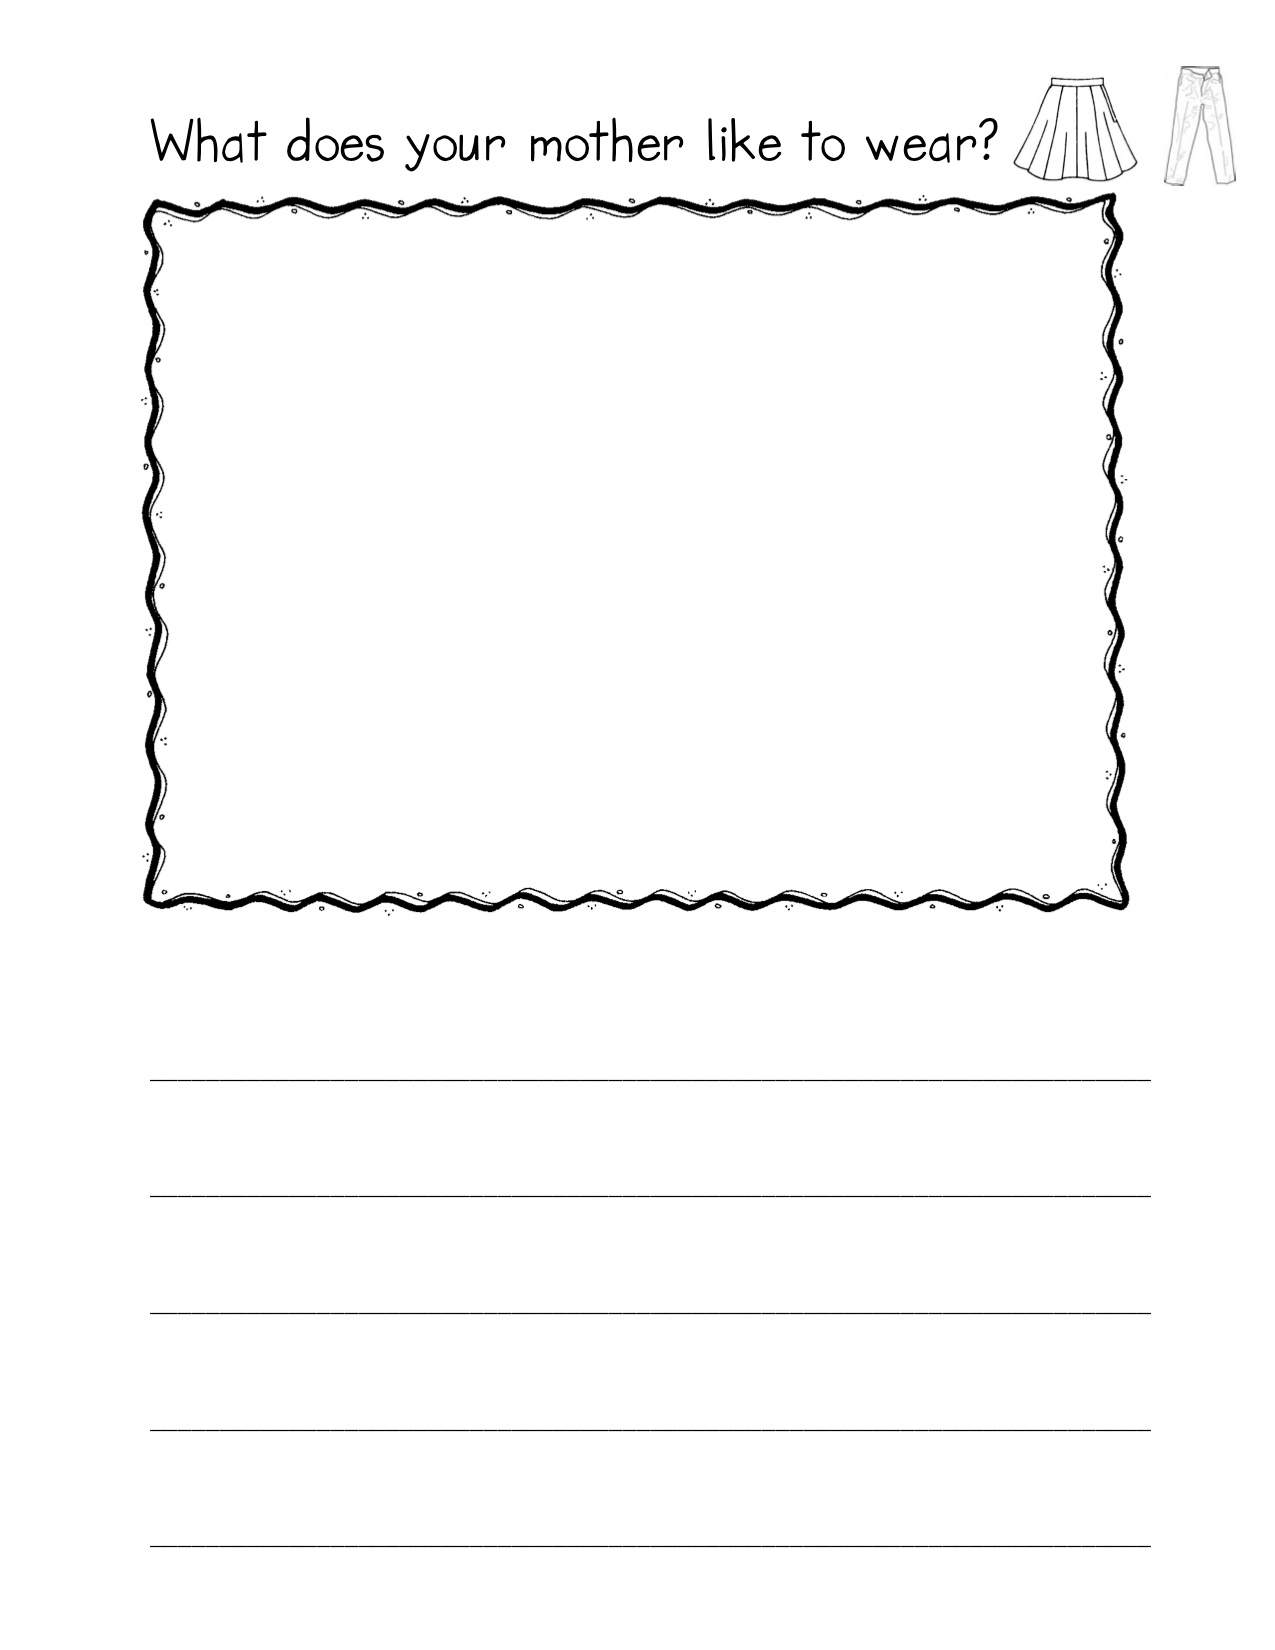 Preschool Writing Paper With Drawing Box